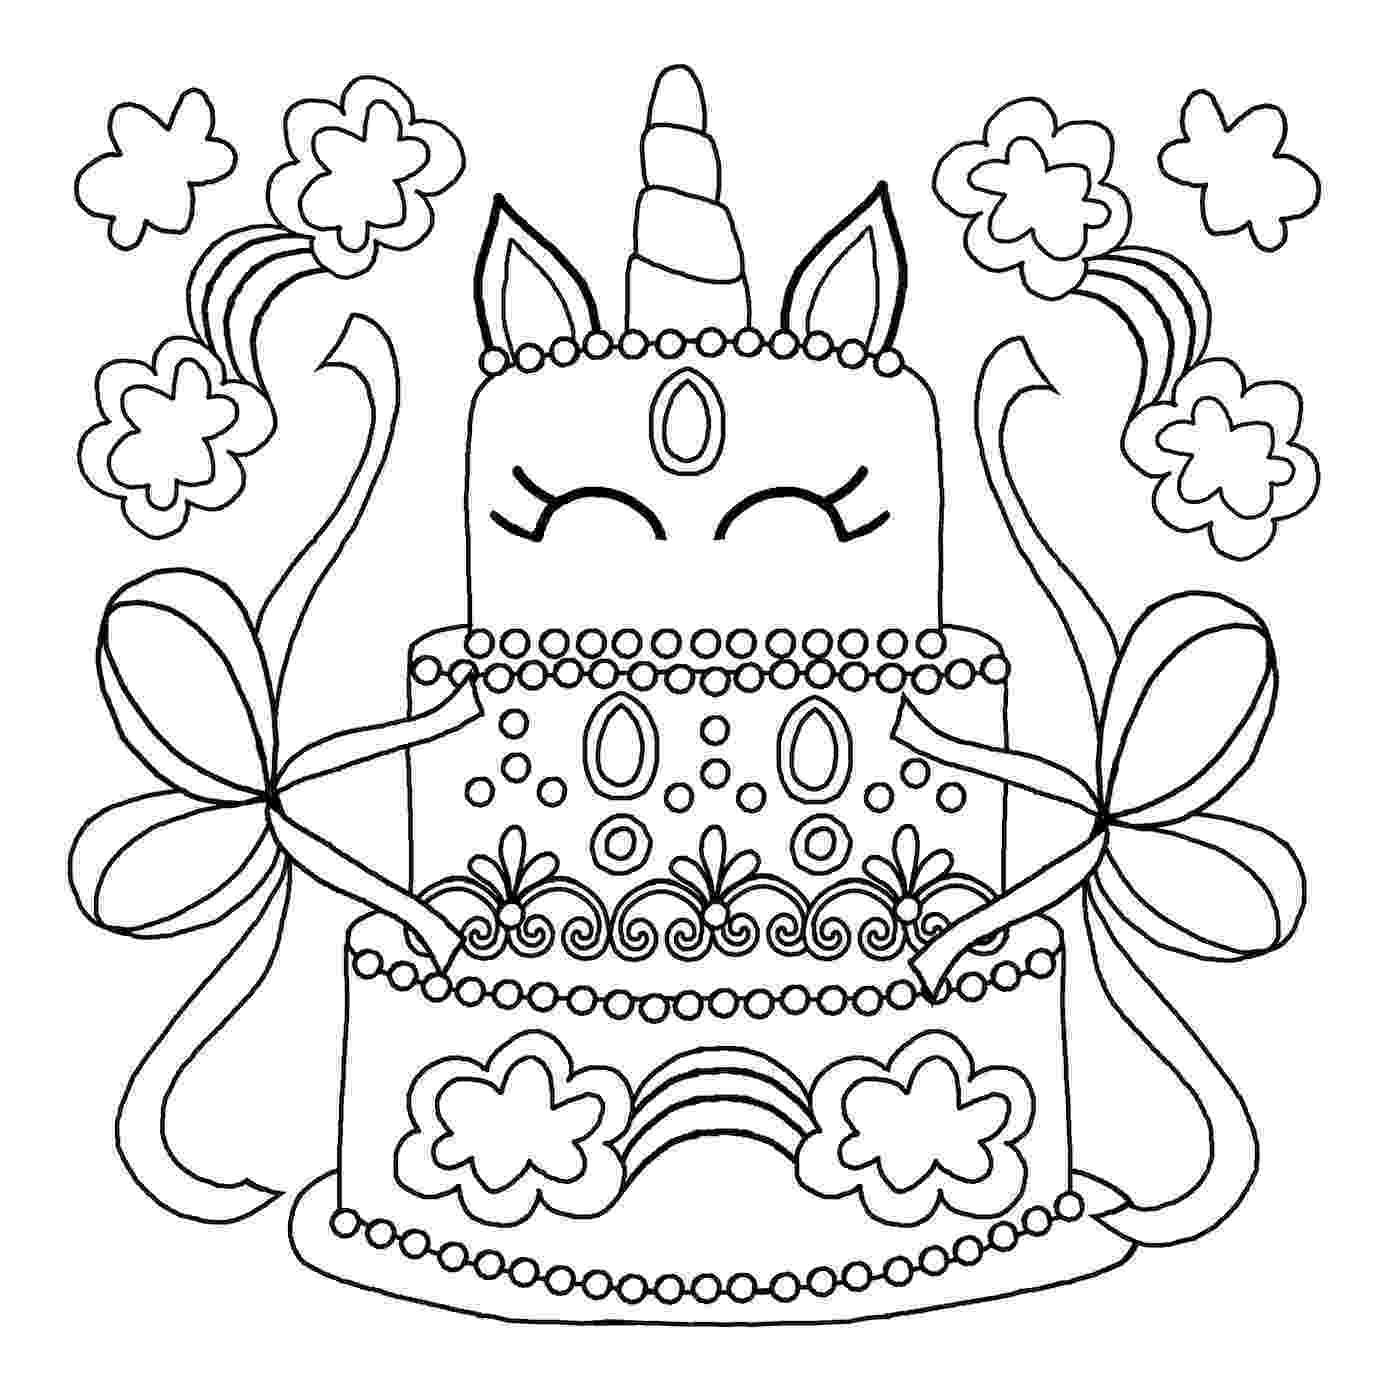 unicorn coloring pictures downloadable unicorn colouring page michael o39mara books coloring pictures unicorn